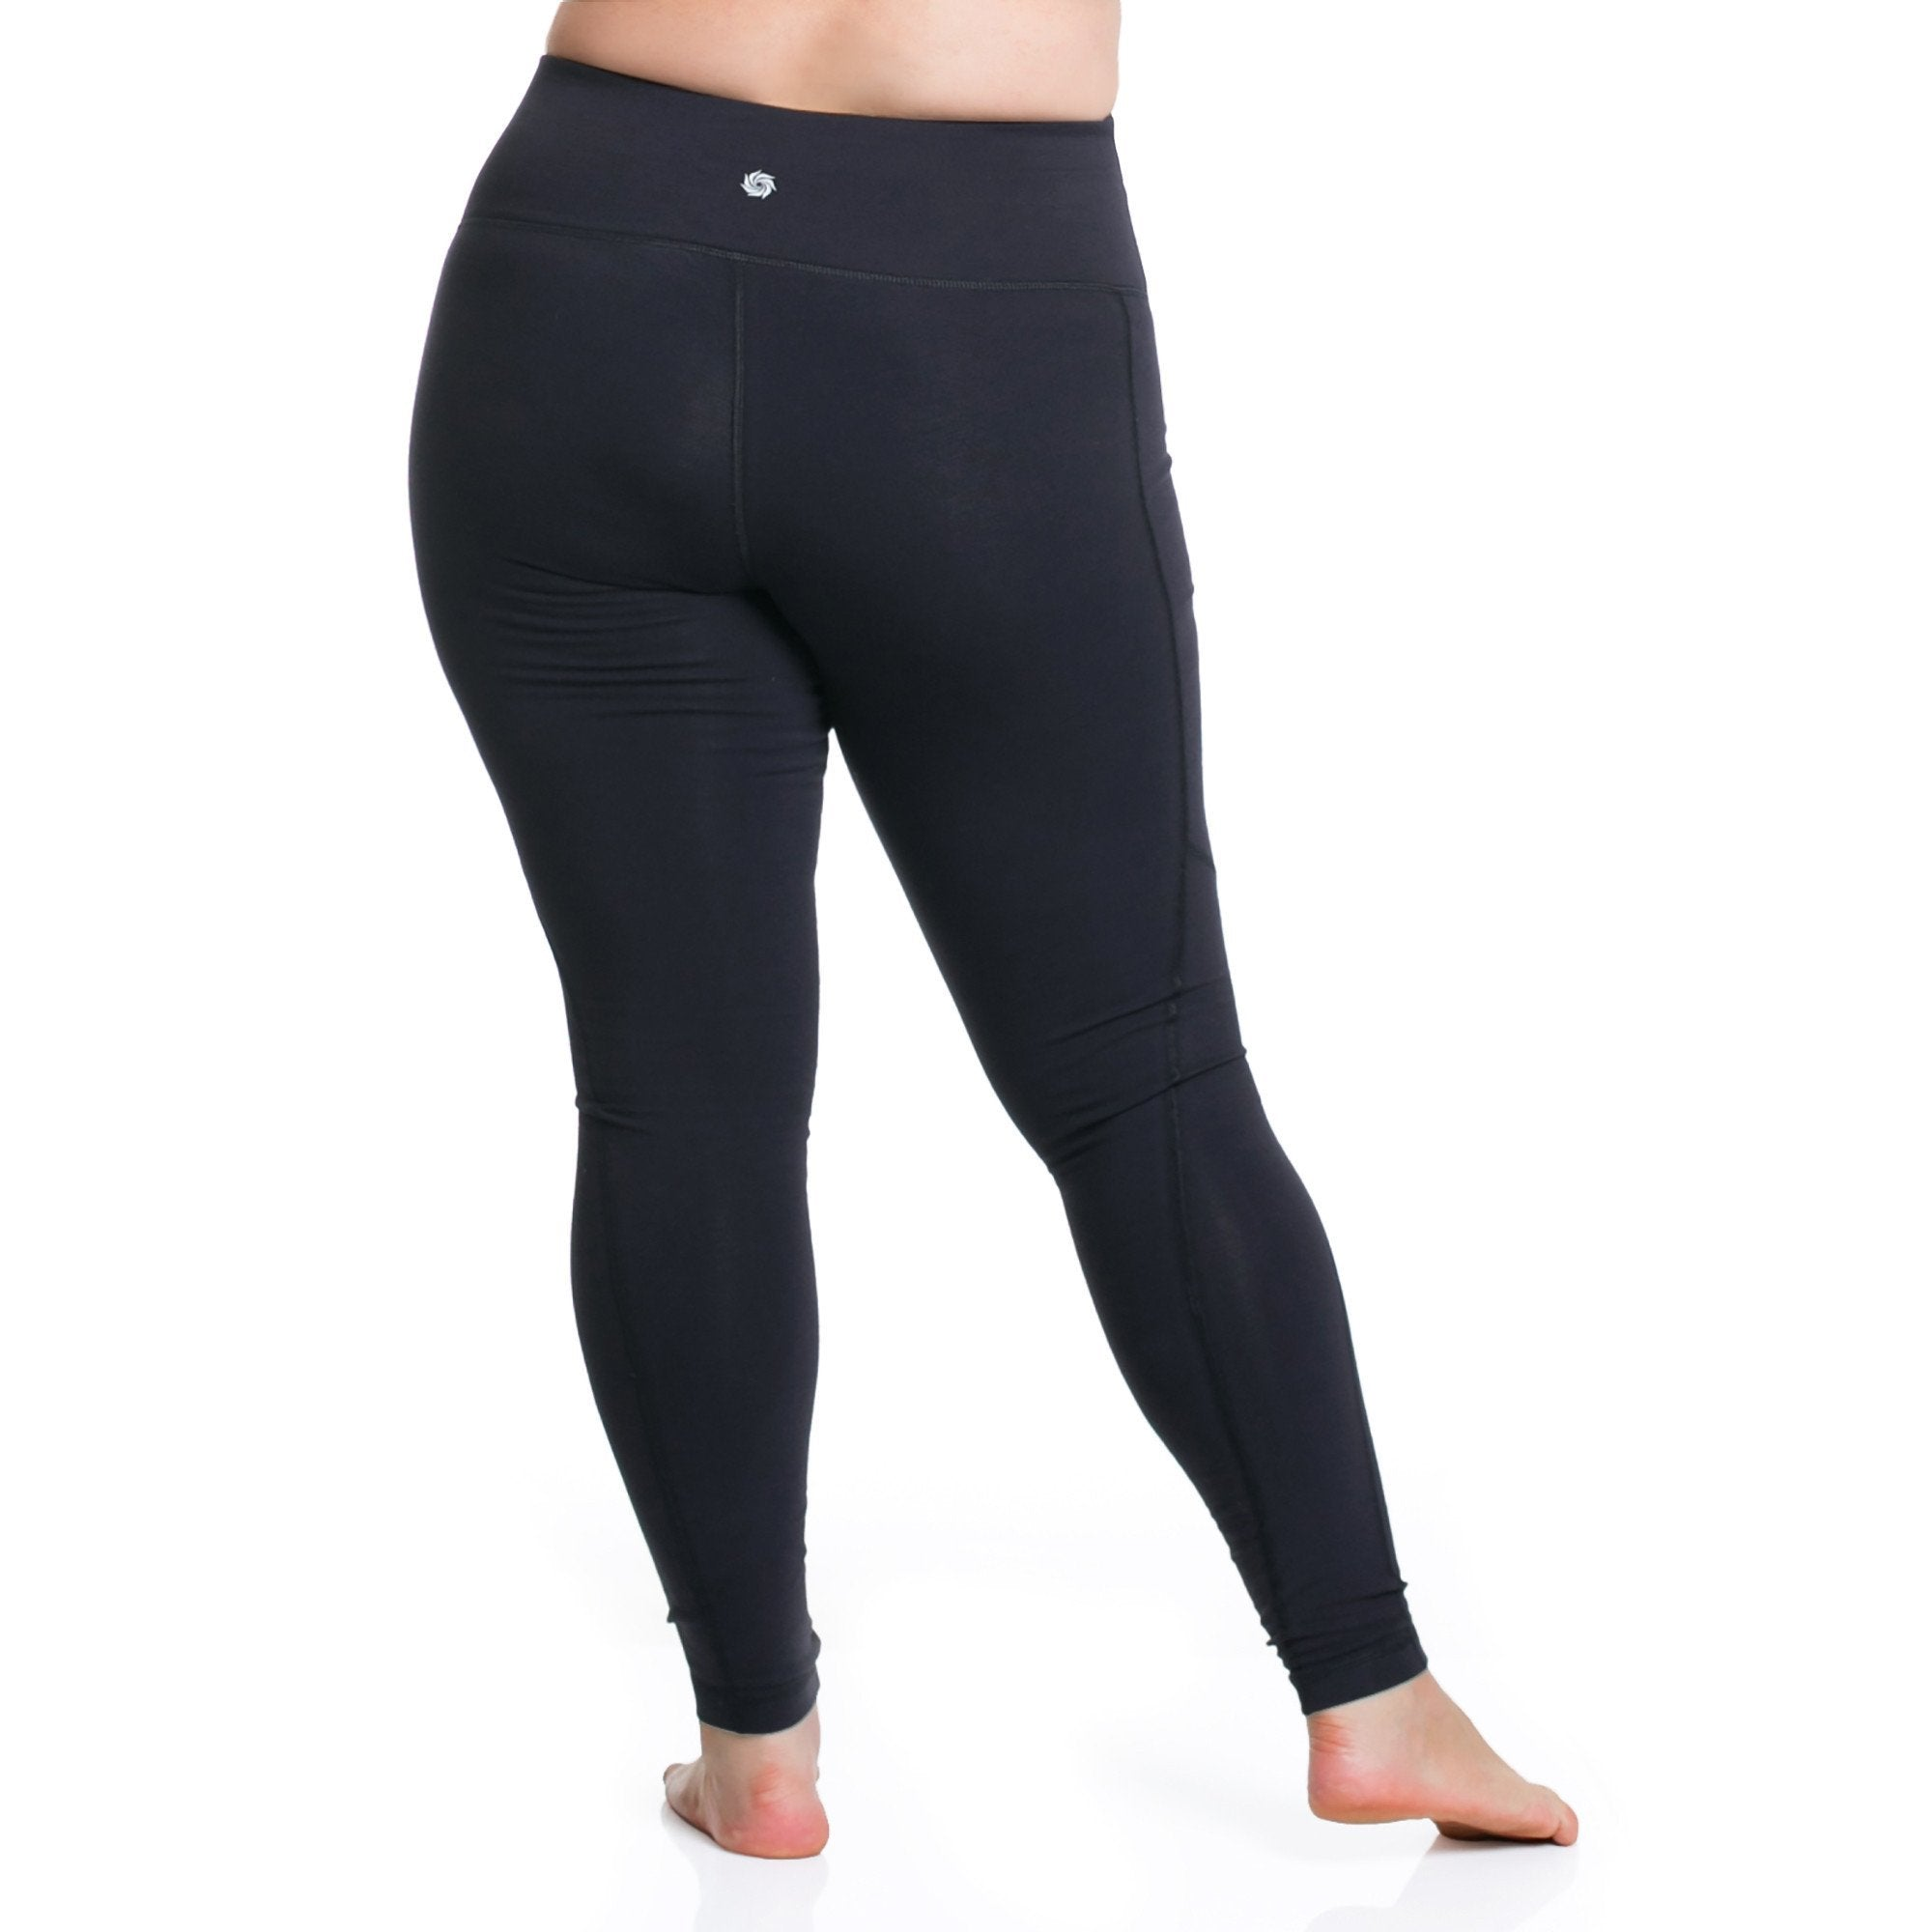 b7a235df493 Rainbeau Curves - Curve Basix Compression Legging - Plus Size ...